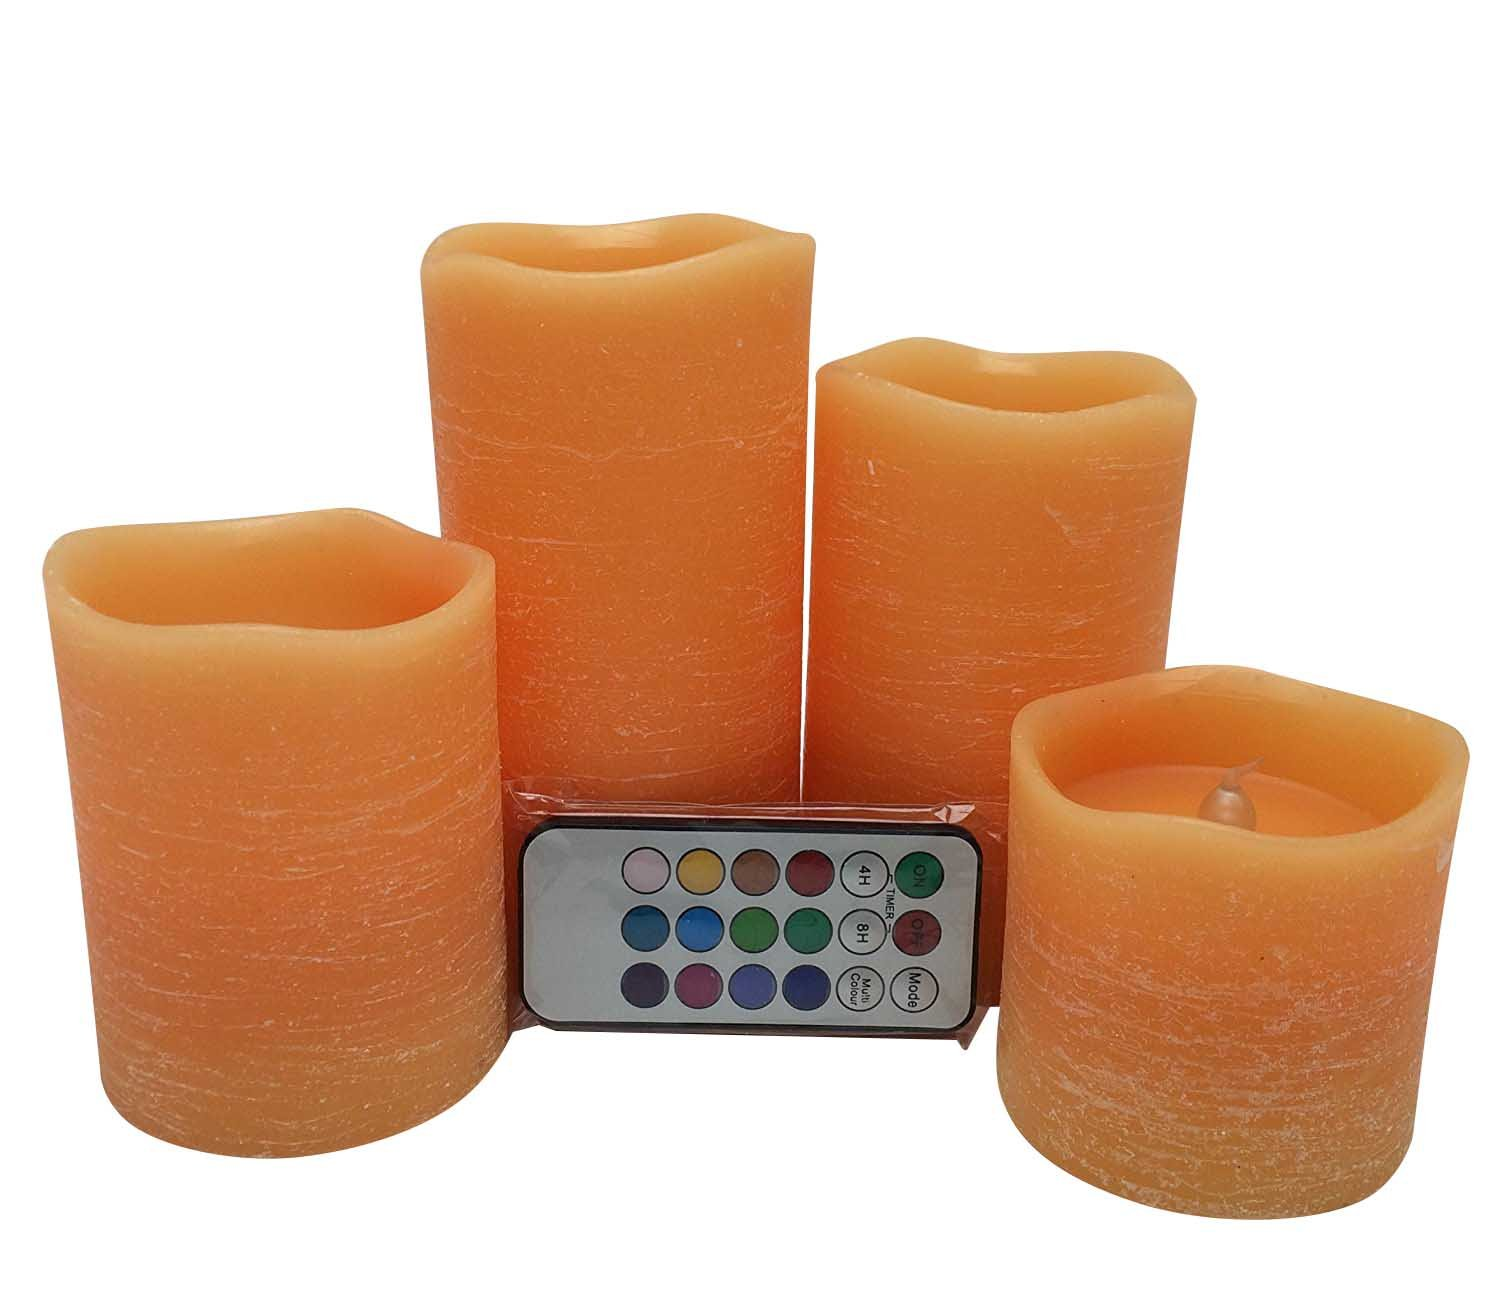 Adoria Orange Flameless Led Candle Set of 4, Real Wax Rustic Battery Candle Light-Lime Scent-Tall3/4/5/6inch by Adoria